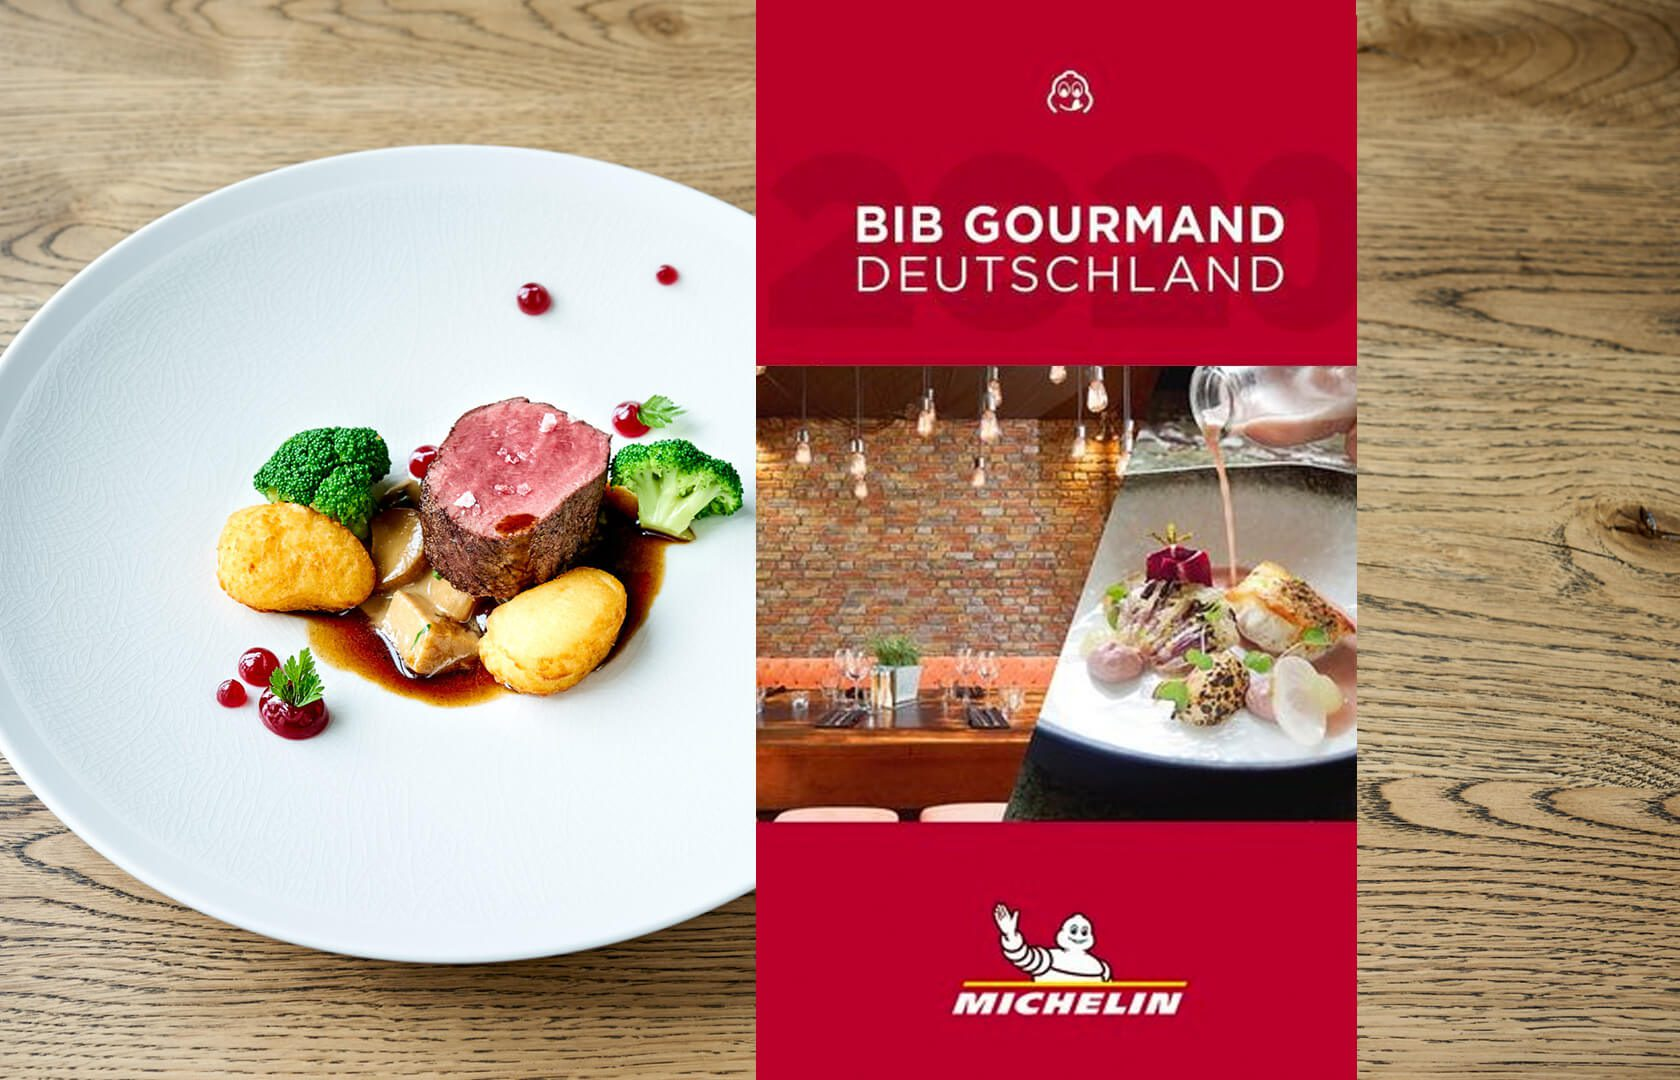 Michelin Bib Gourmand Deutschland 2020